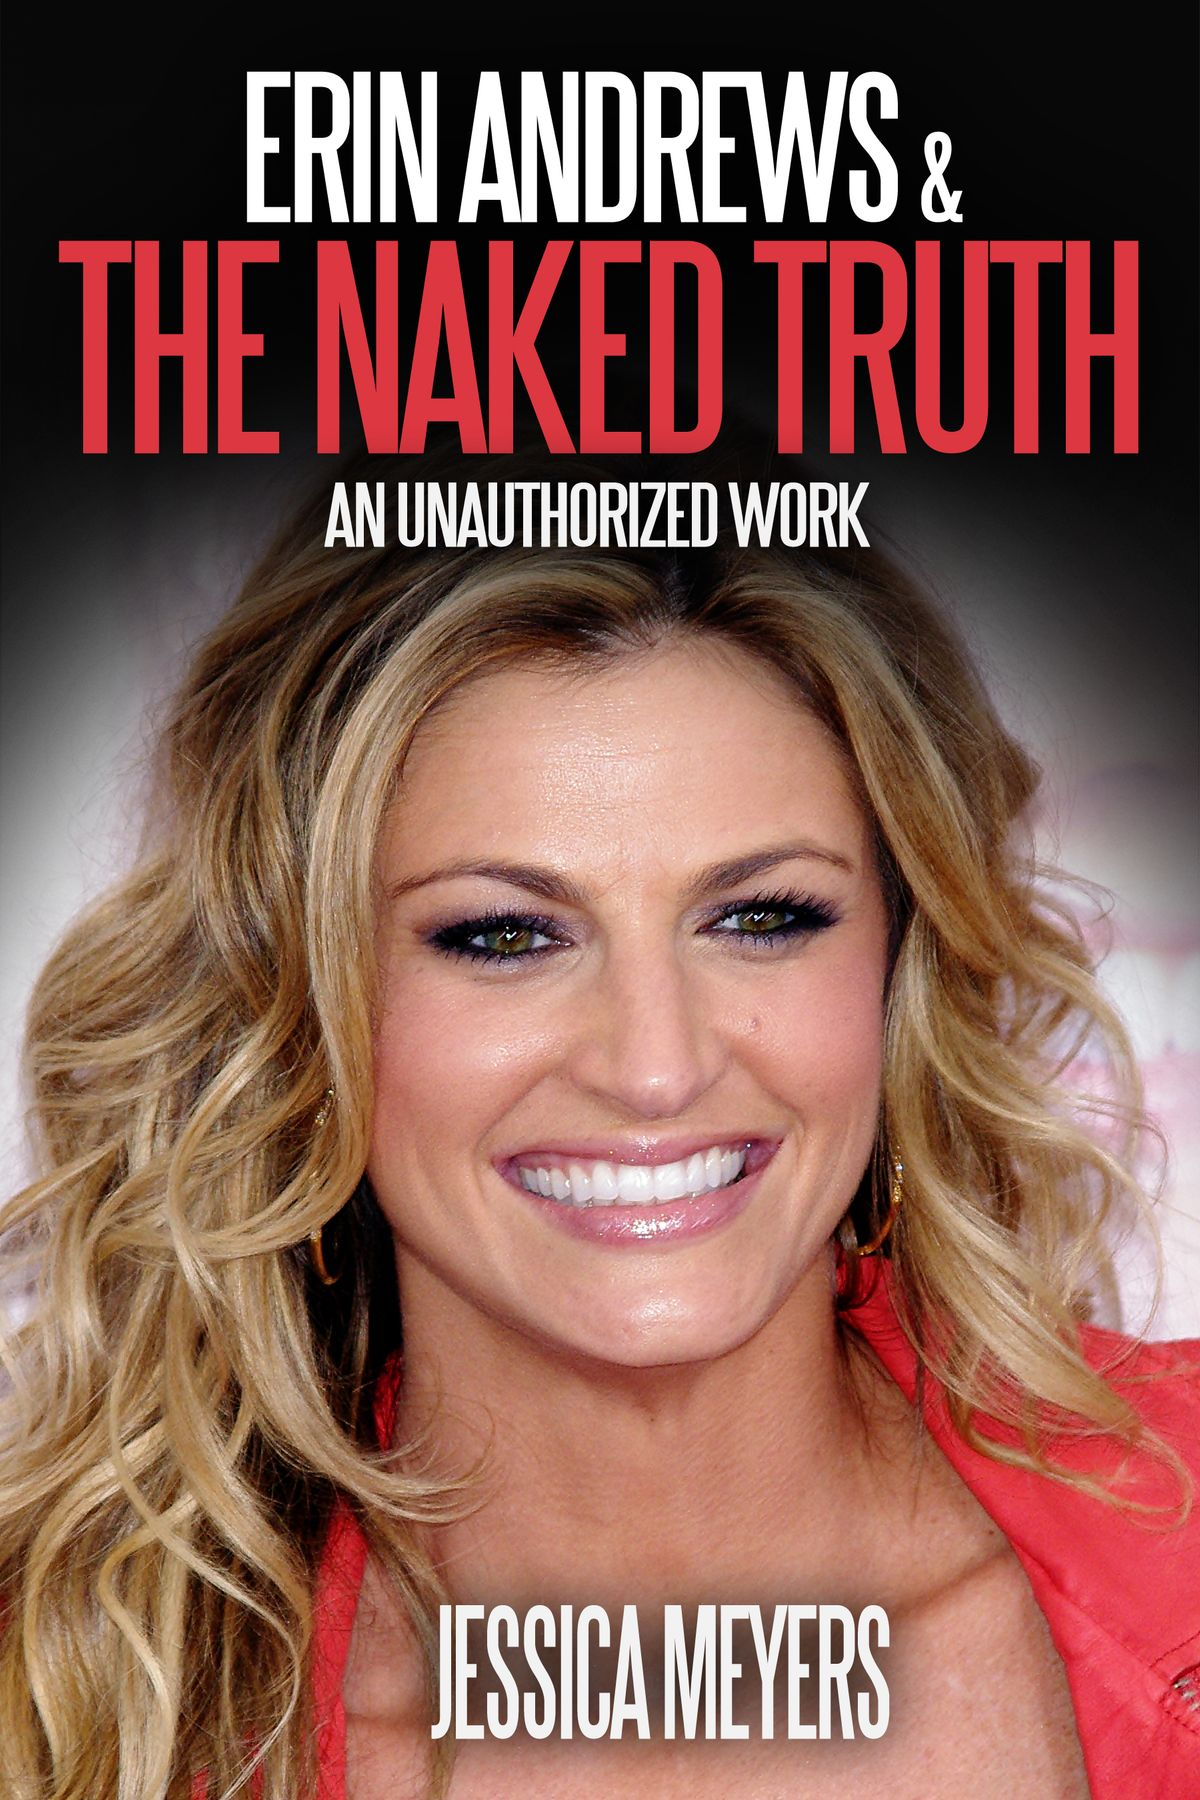 Erin Andrews And The Naked Truth An Unauthorized Work - Ebook - Walmartcom-1504